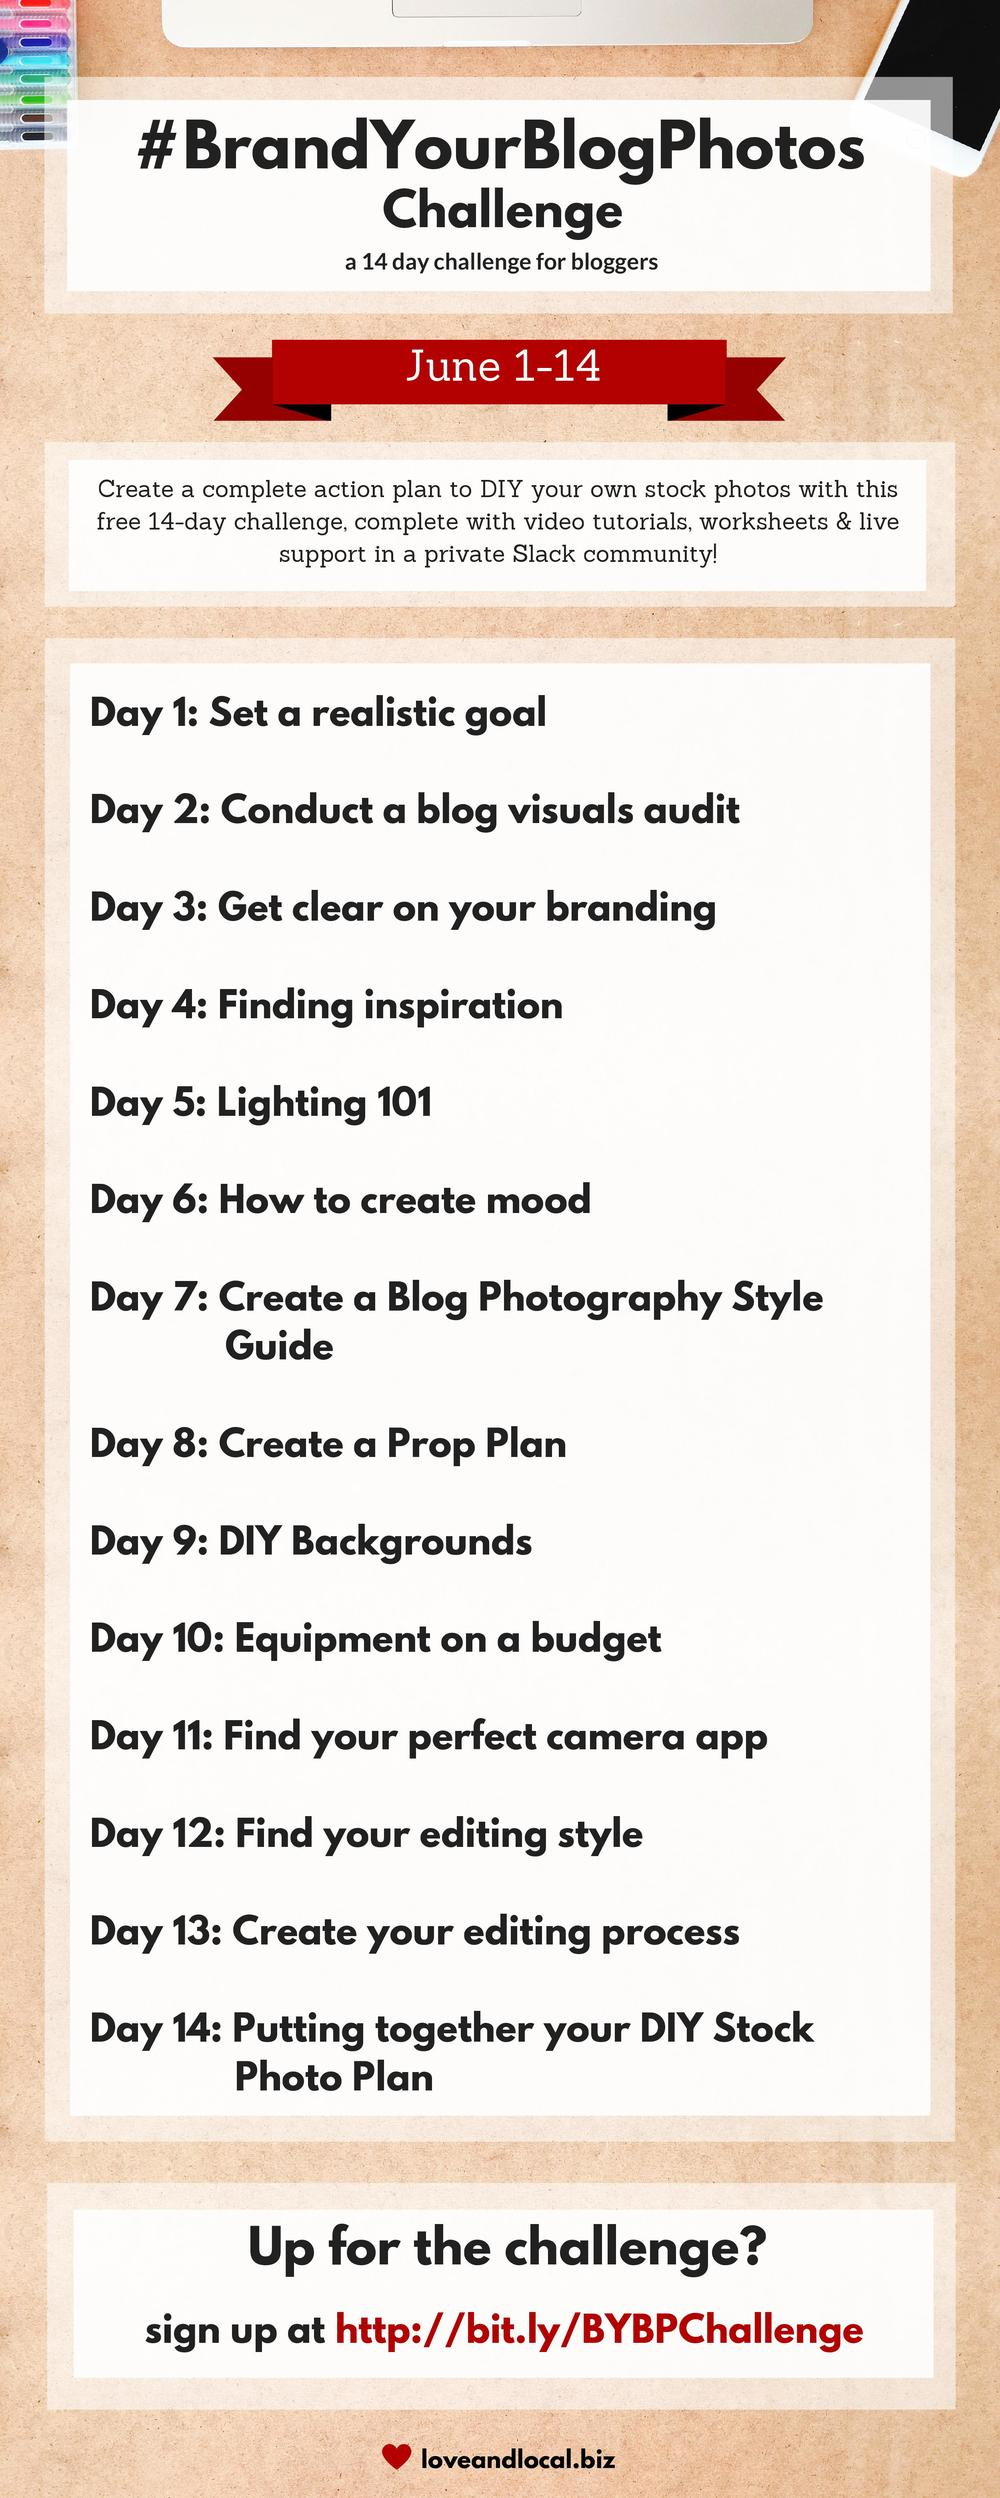 Create an action plan to DIY your own stock photos with this FREE 14 day branding & photography challenge for bloggers! via @loveandlocalbiz | loveandlocal.biz